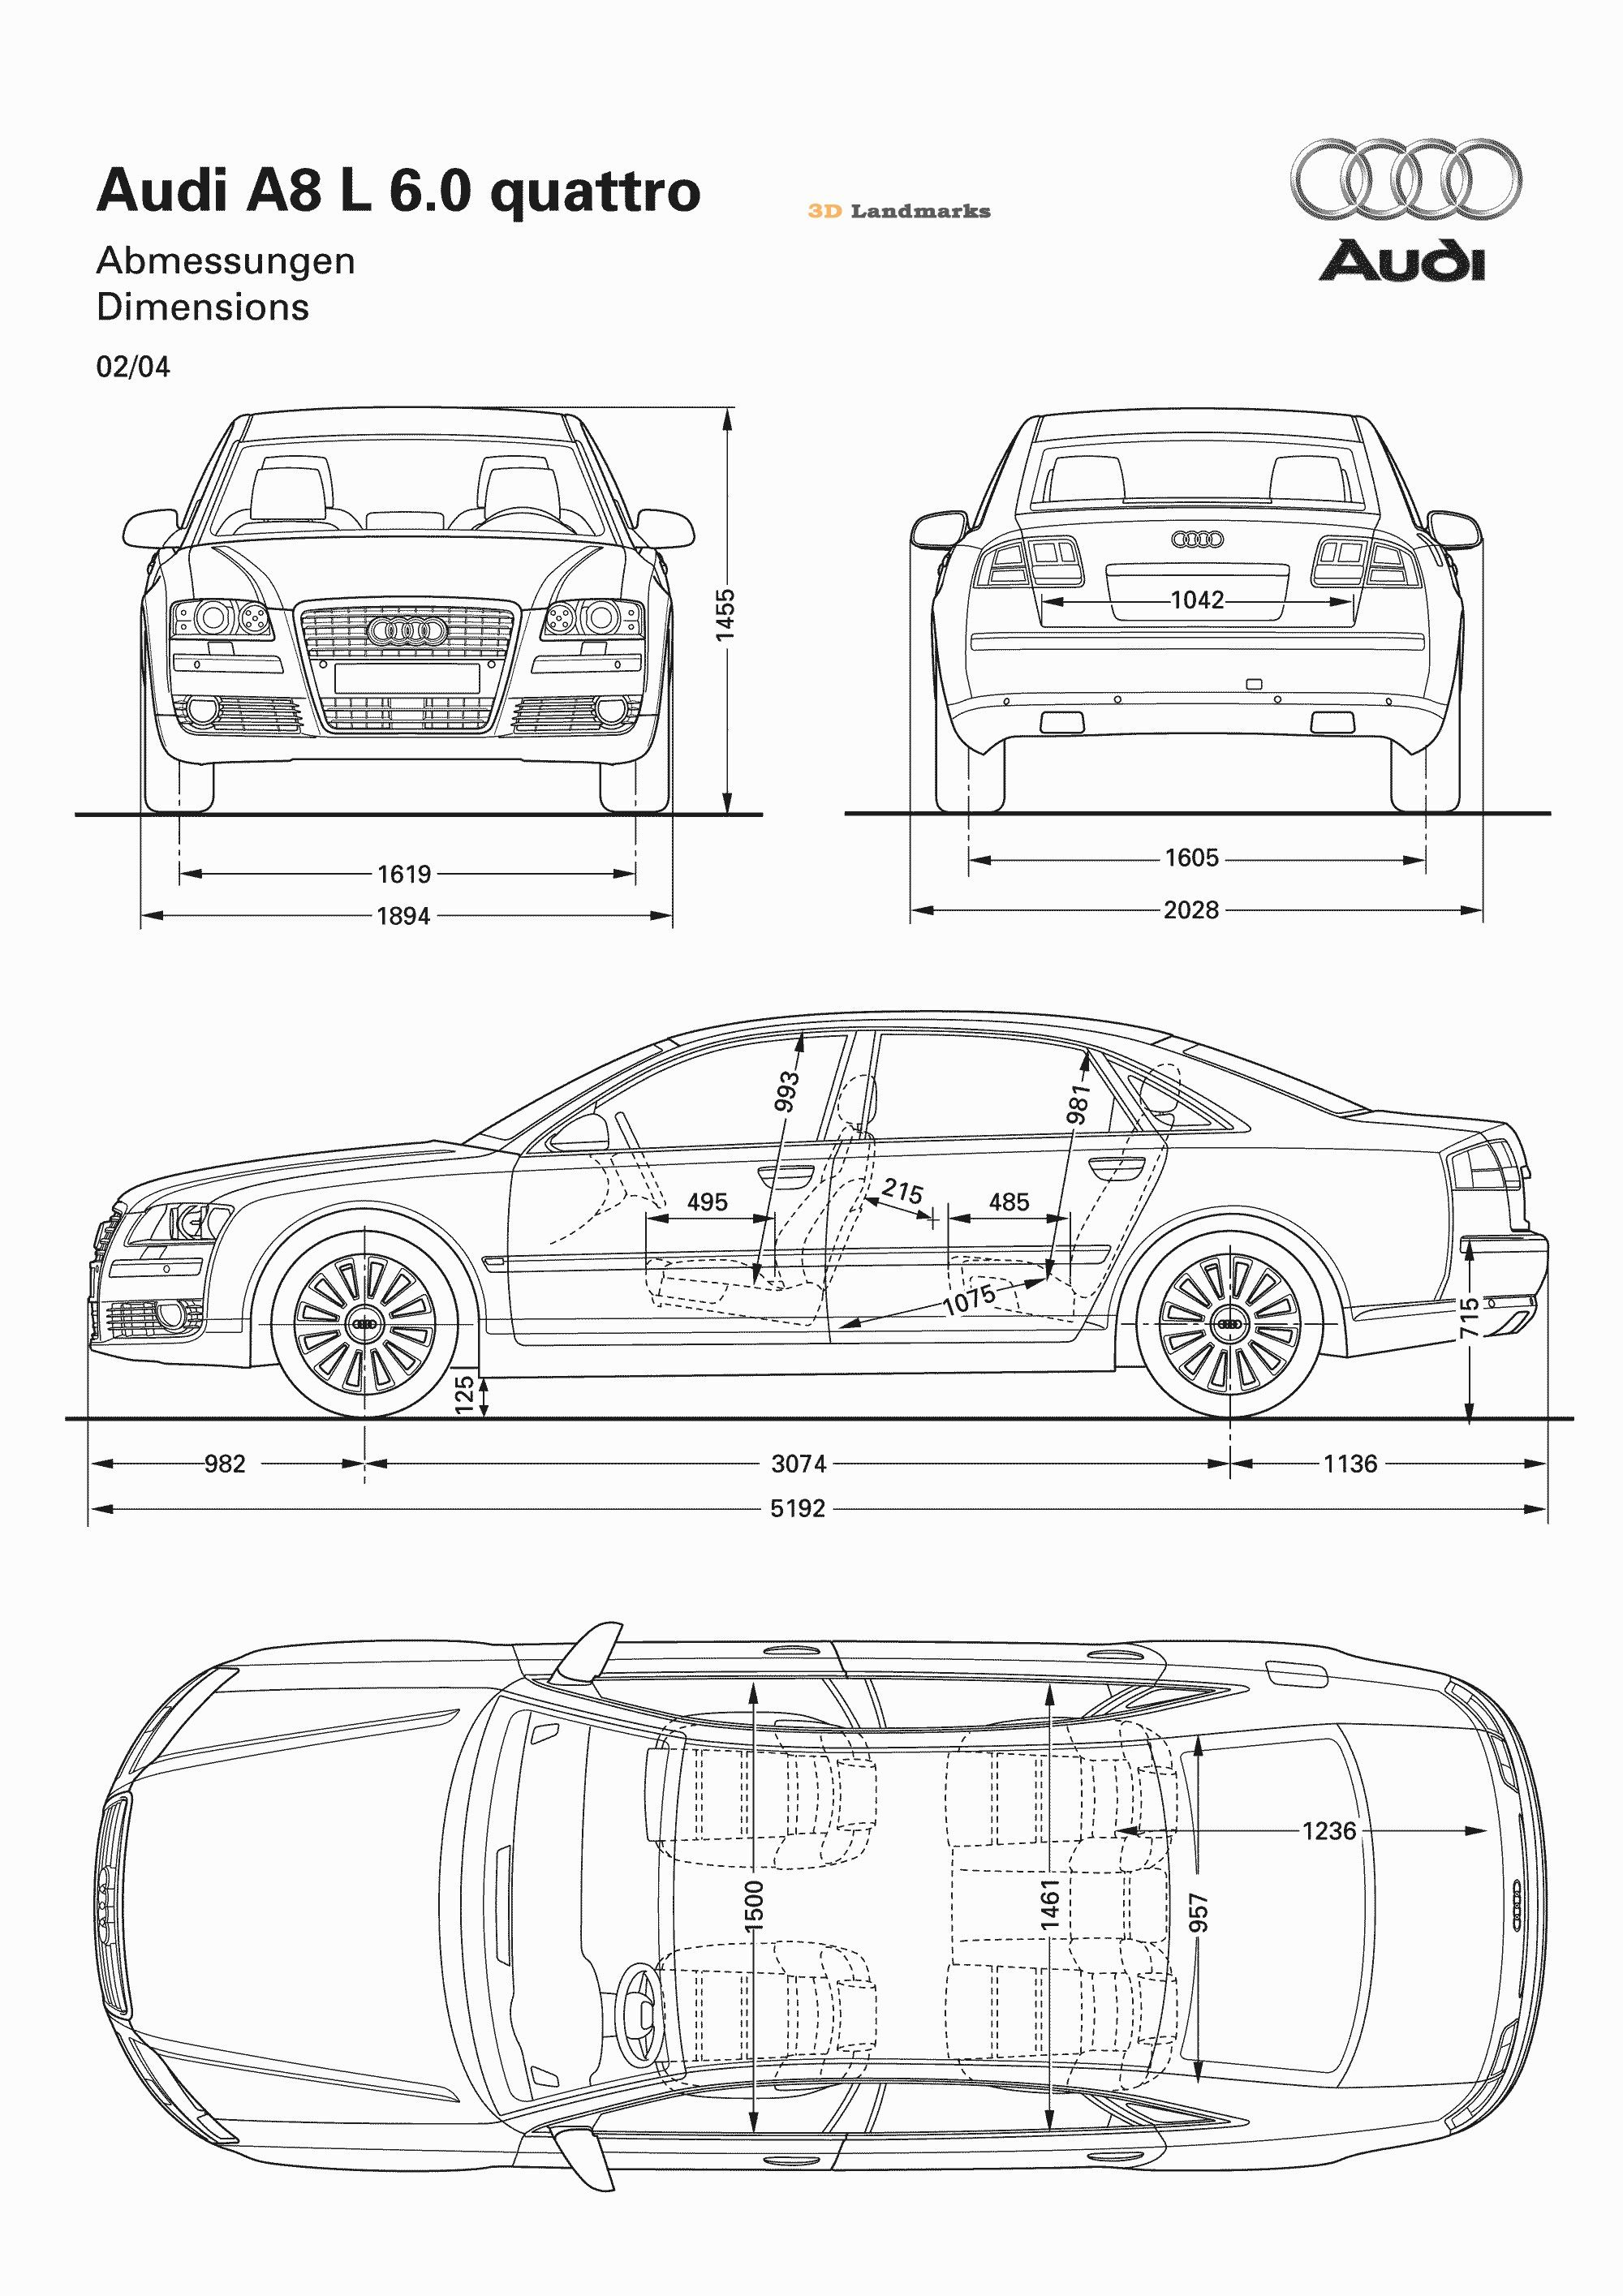 Automobile blueprints car blueprints audi audi a8 2004 automobile blueprints car blueprints audi audi a8 2004 malvernweather Image collections